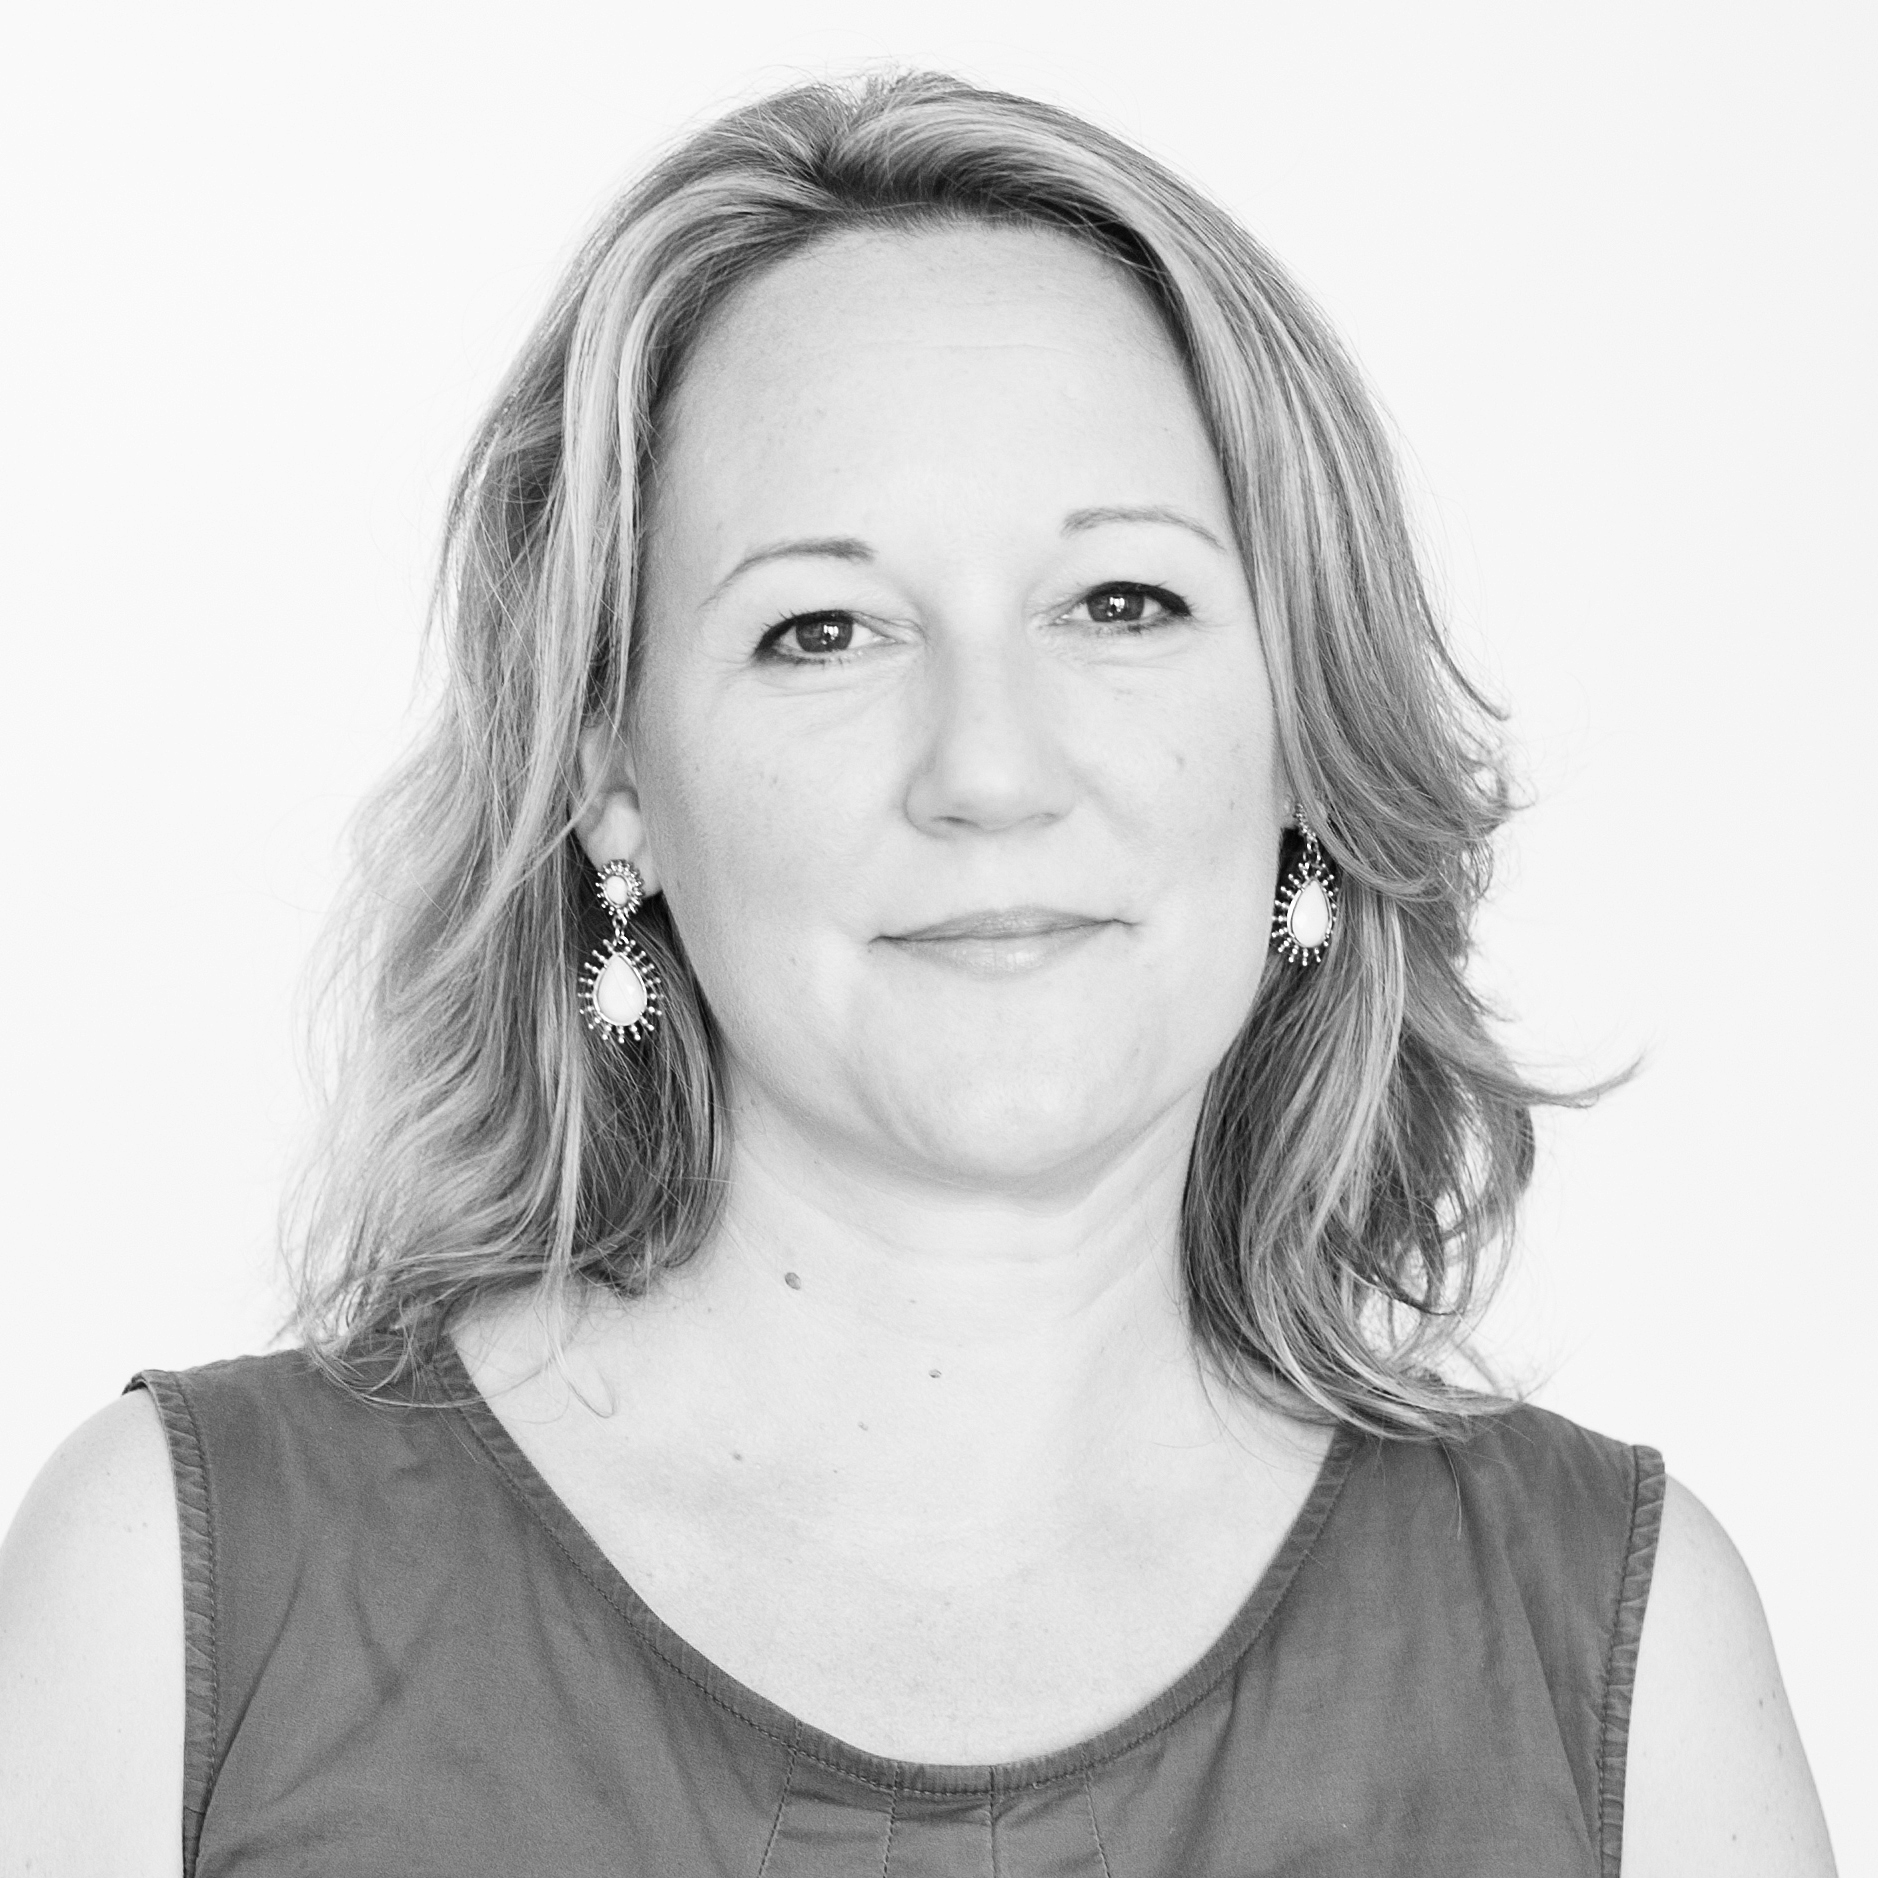 Katya Borowskiis a fundraising and communications professional based in the UK.